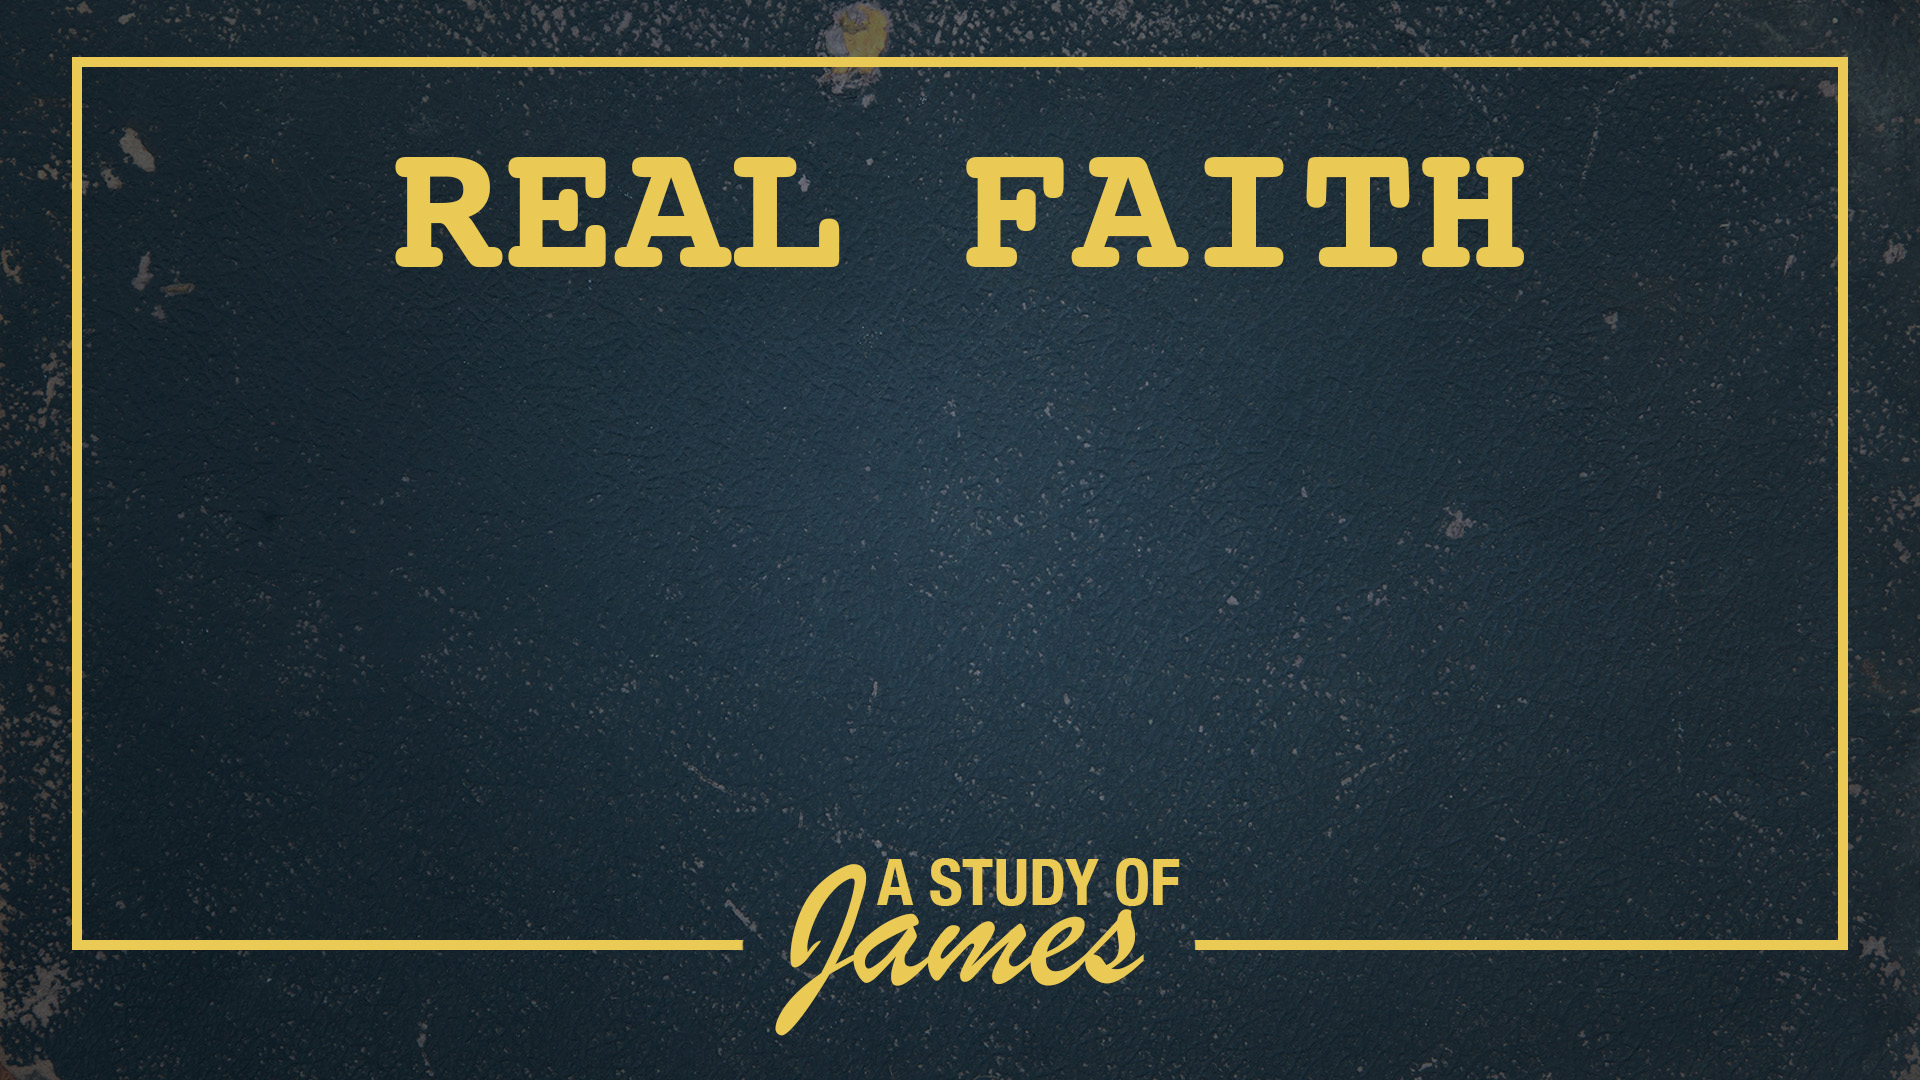 James series title graphic.jpg